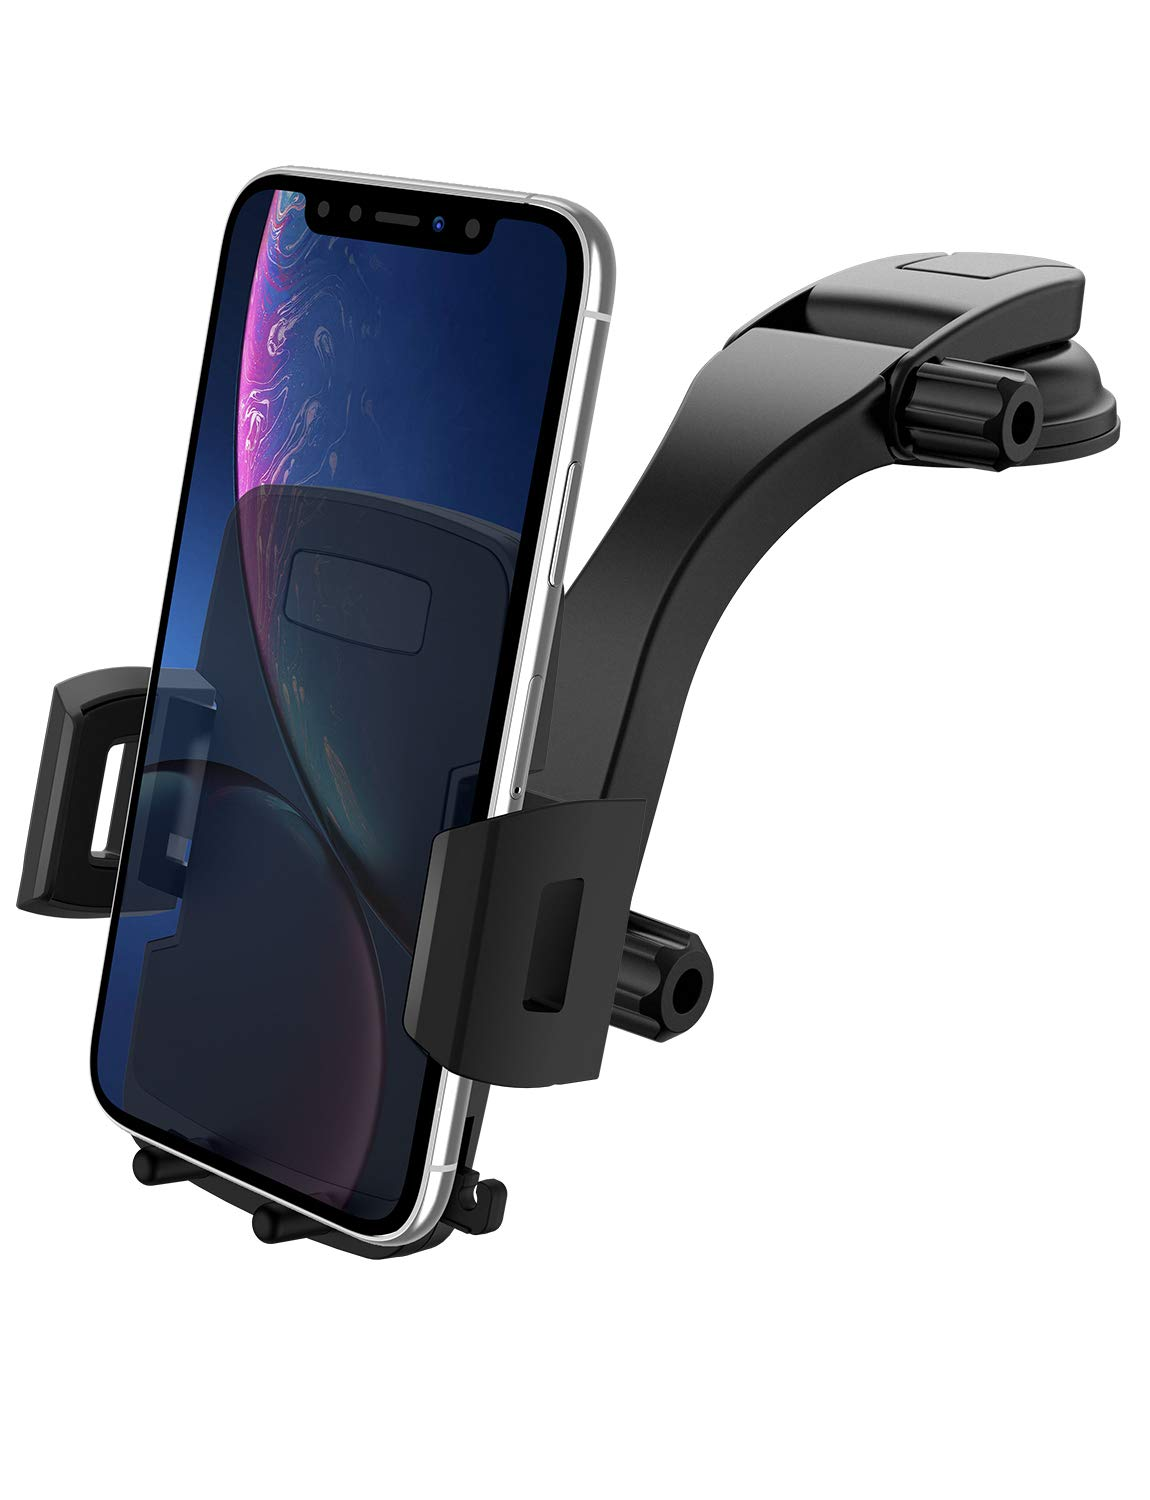 Car Phone Mount, Miracase Cell Phone Holder for Car Dashboard&Windshield Adjustable Vehicle Phone Support Universal Stand for iPhone Xs/XS MAX/XR/X/8/8Plus/7/7Plus, Galaxy S8/S9, Note 8/9/10(4''-6.5'')